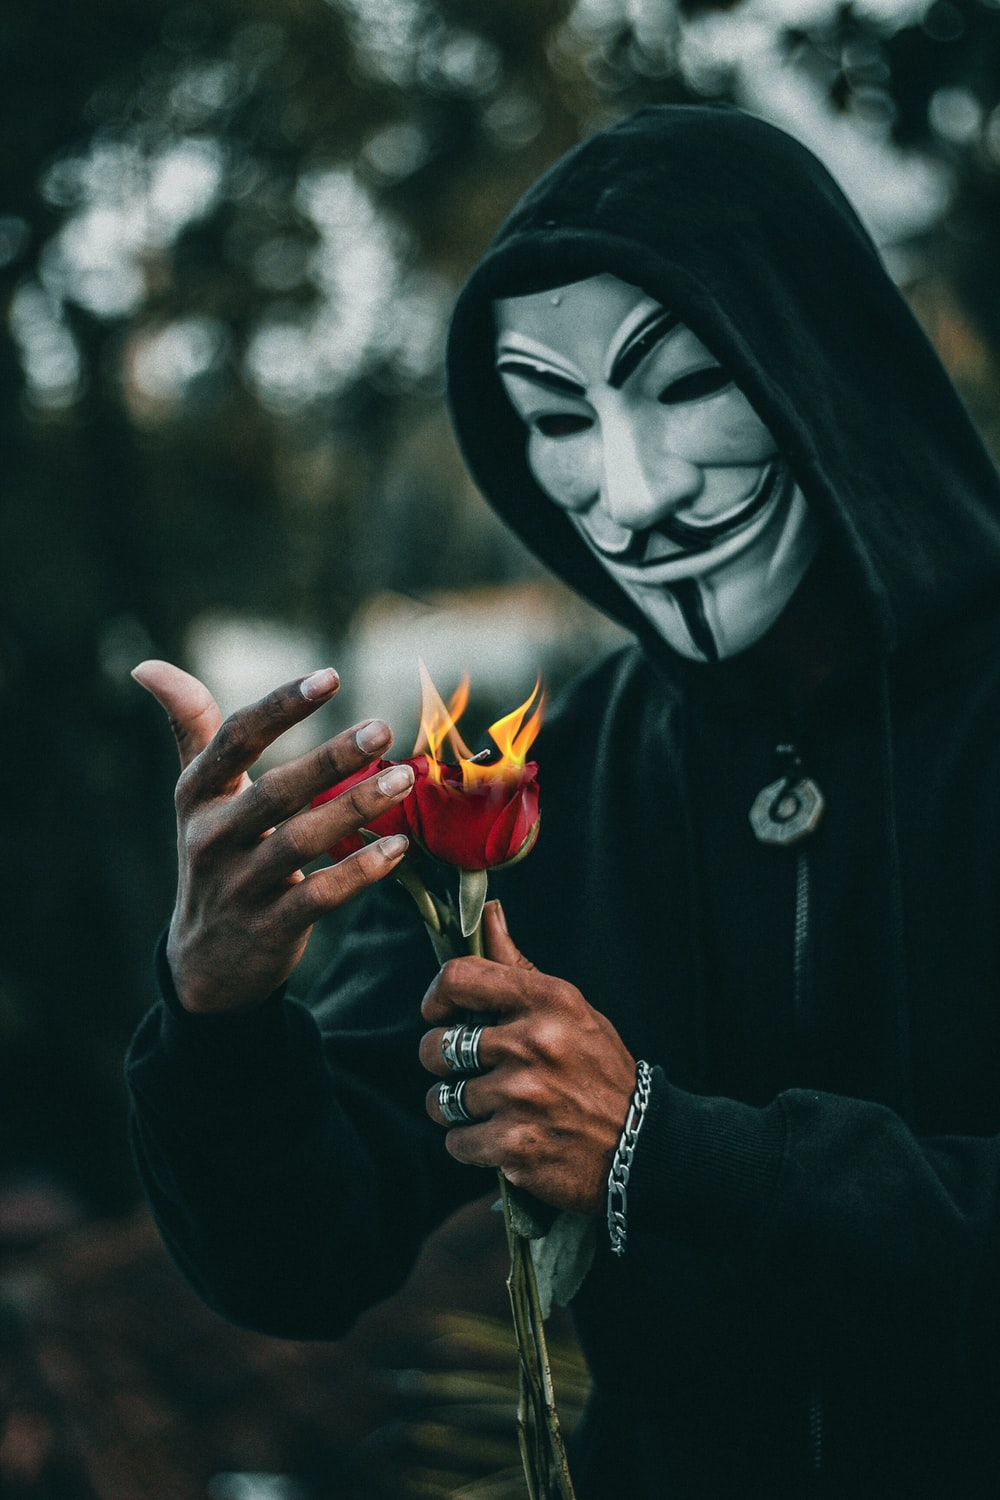 person wearing guy fawkes mask standing while holding burning red rose flower